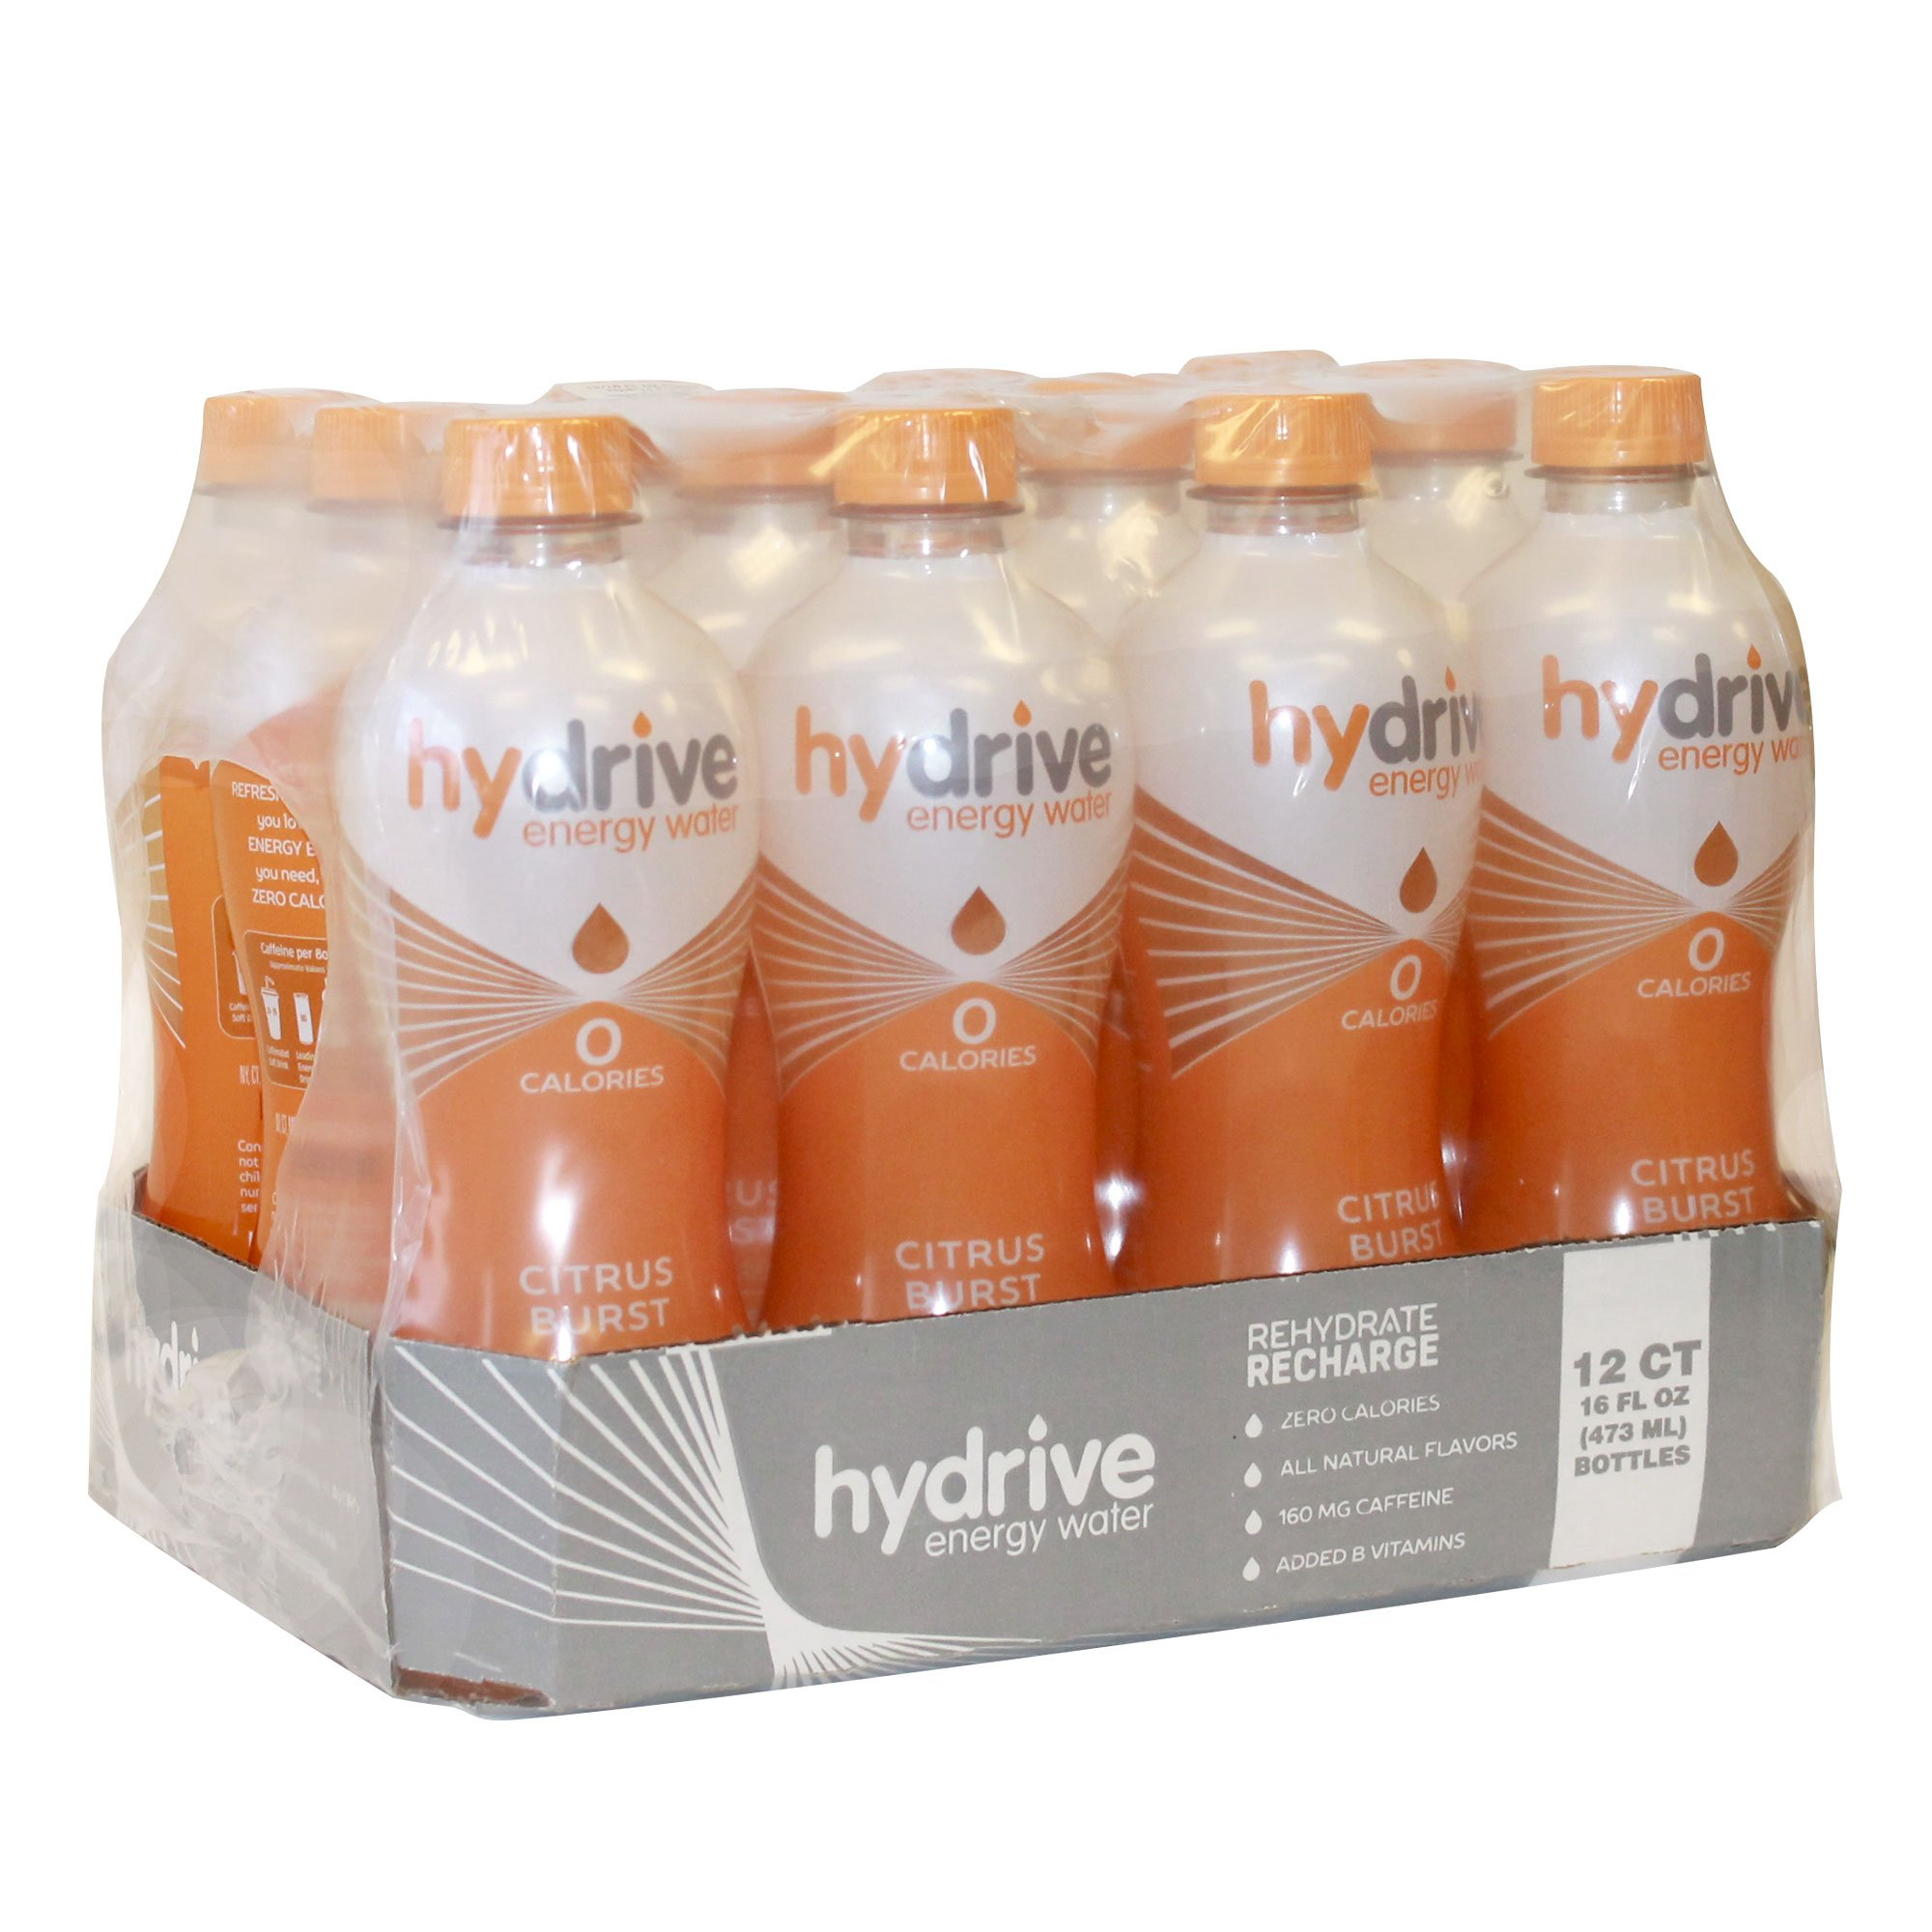 Hydrive Energy Water | Citrus Burst | Sugar Free | Zero Calories | All Natural Flavors | Natural Energy | 16 oz (Pack of 12) by Hydrive (Image #4)